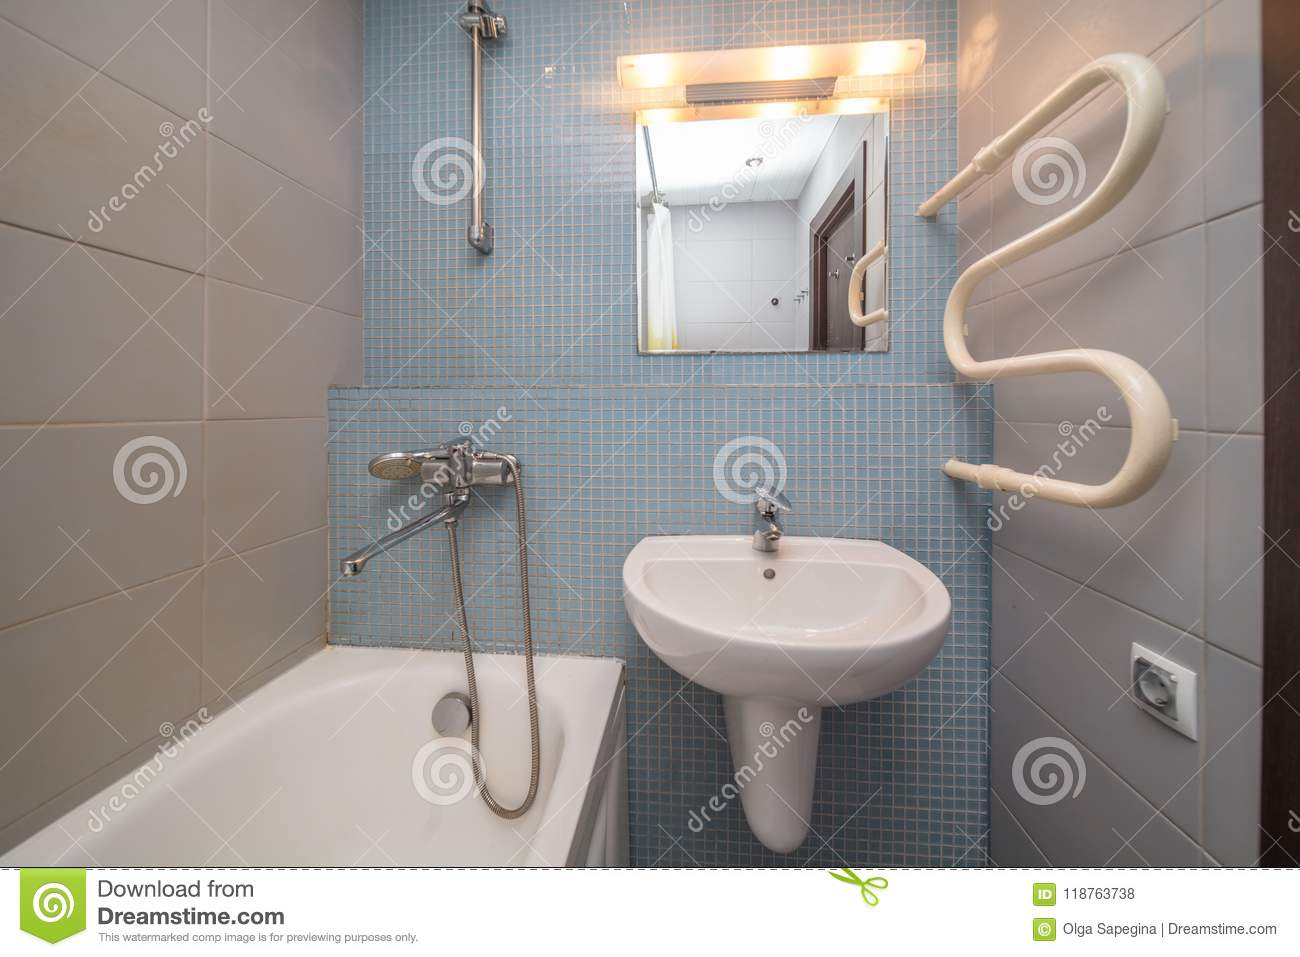 Small grey bathroom stock photo. Image of shower, modern - 118763738